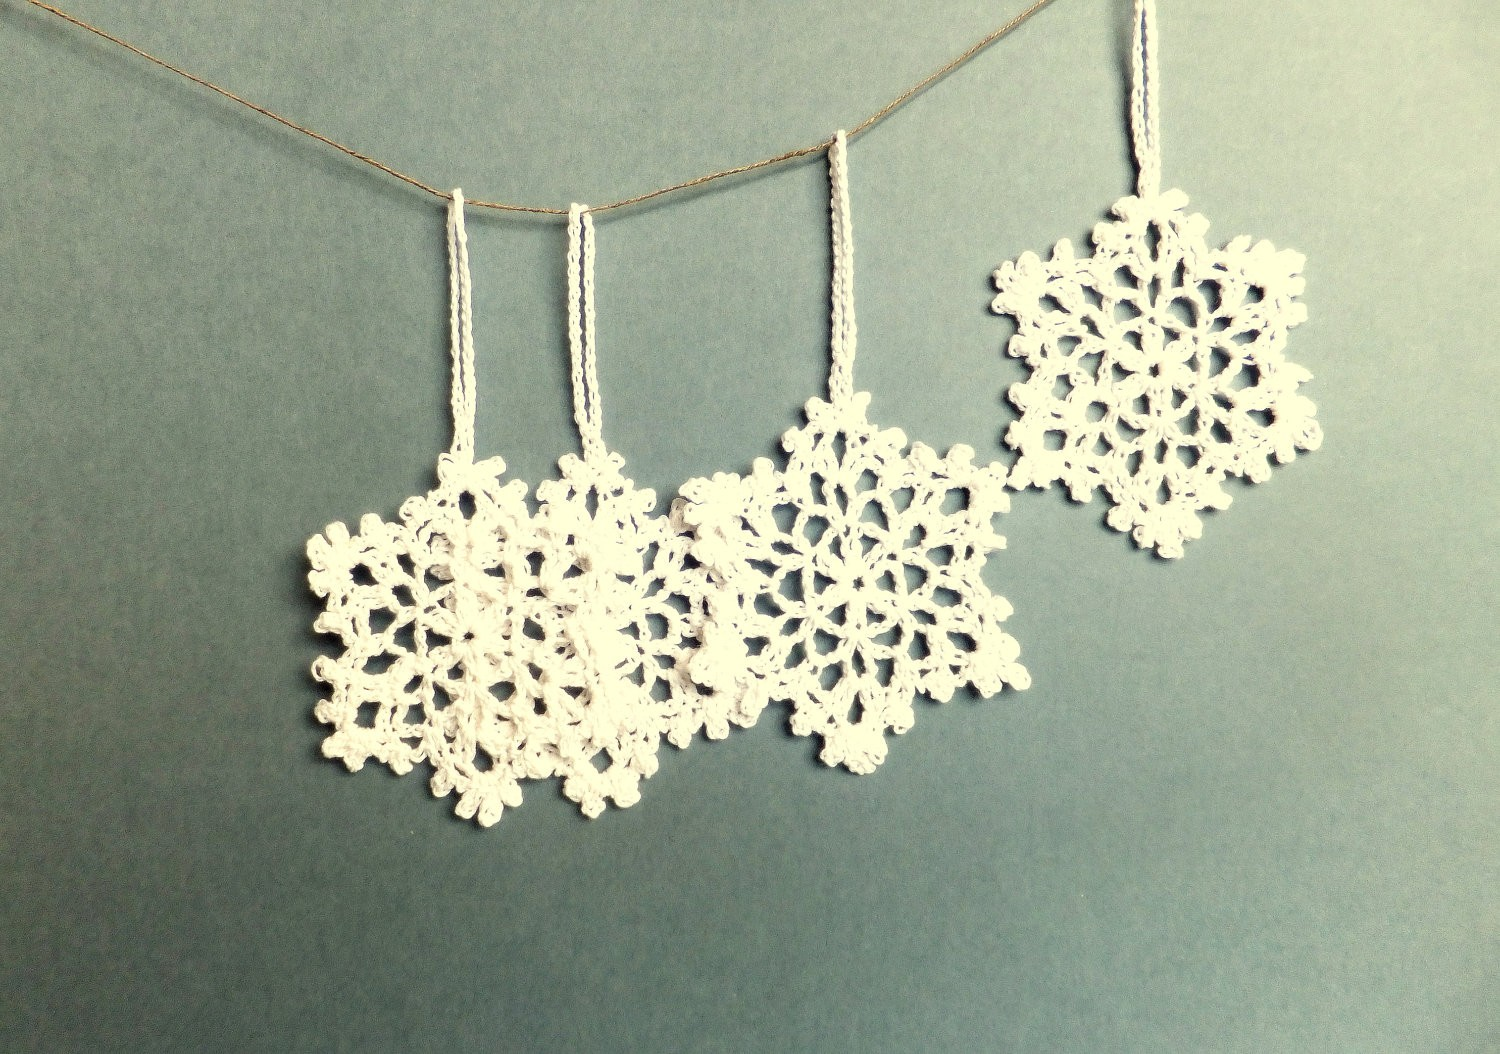 Cool diy snowflakes projects ellys diy blog cool diy snowflakes projects solutioingenieria Images